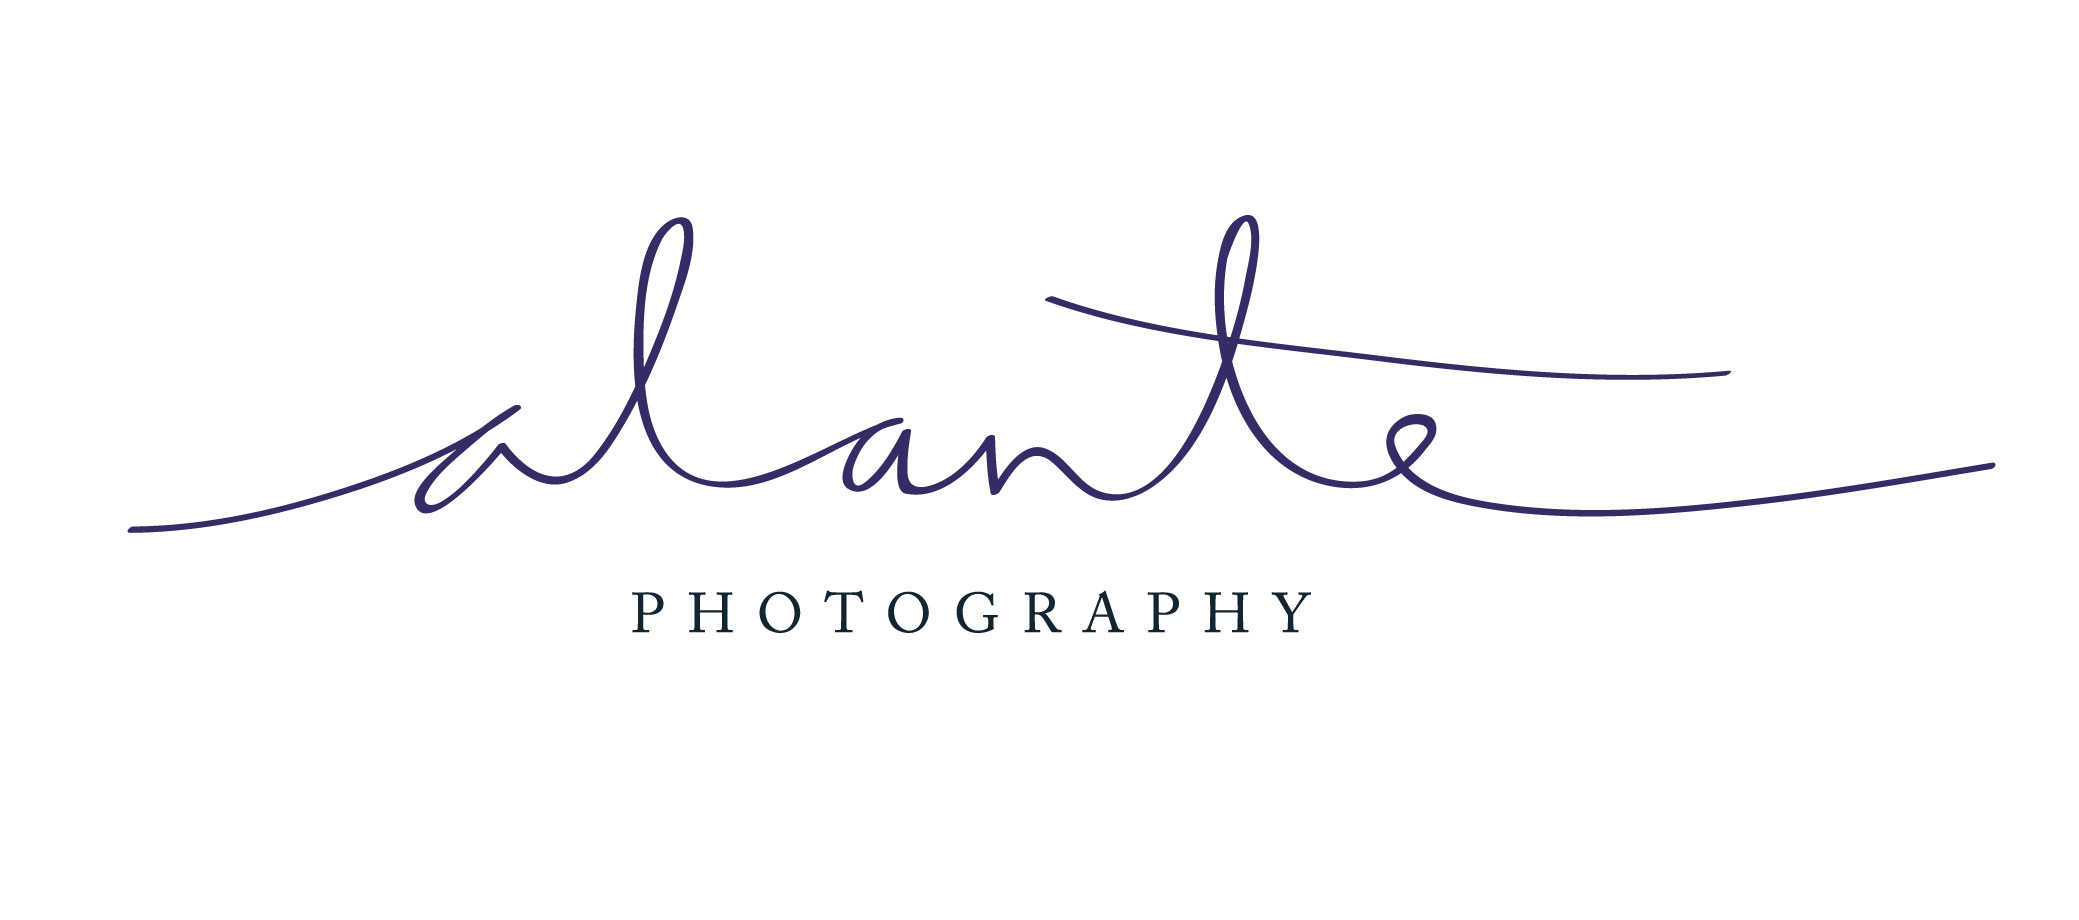 Alante Photography​